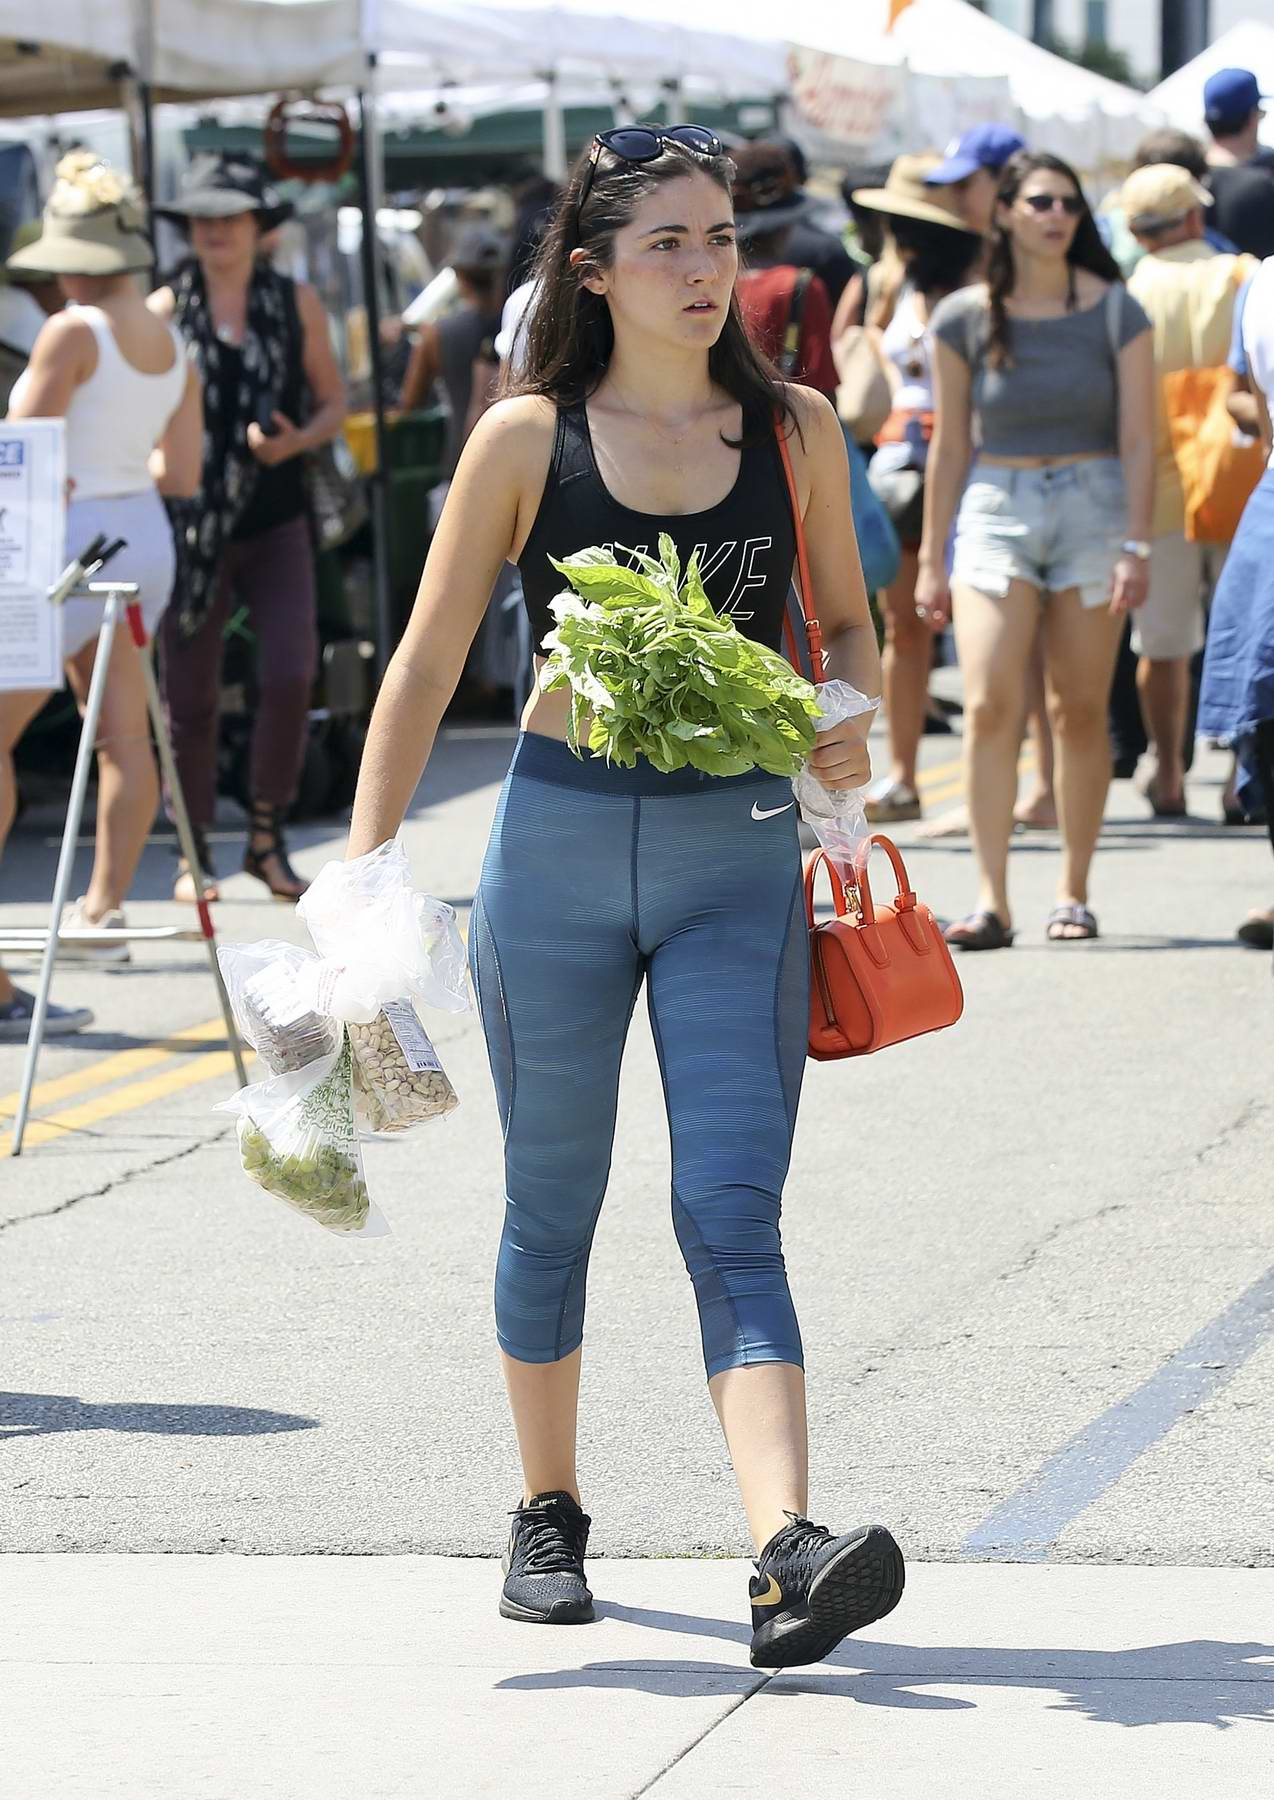 Isabelle Fuhrman shops at a farmers market in Los Angeles